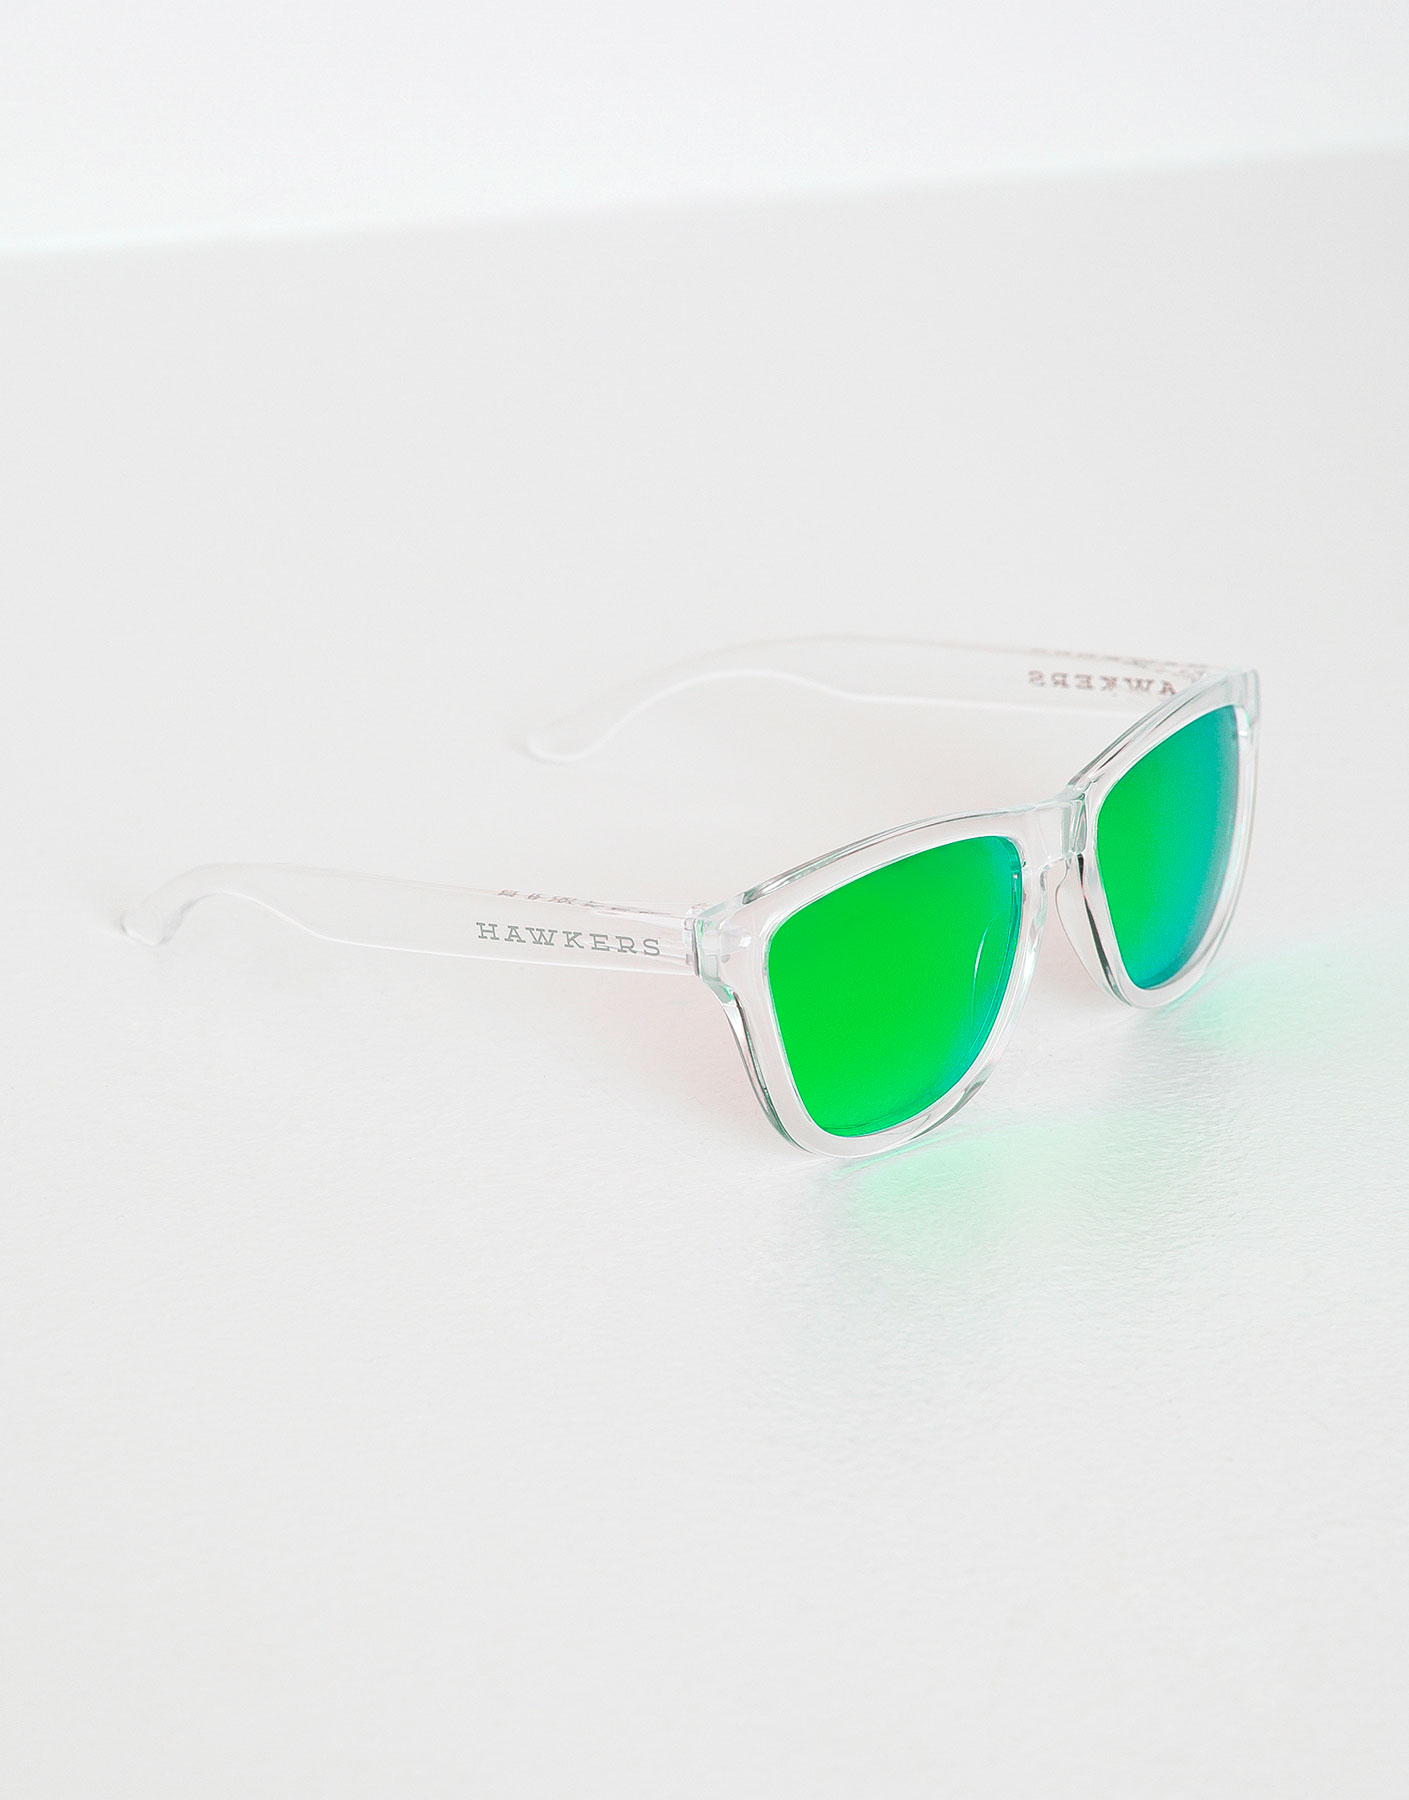 Hawkers air emerald one sunglasses